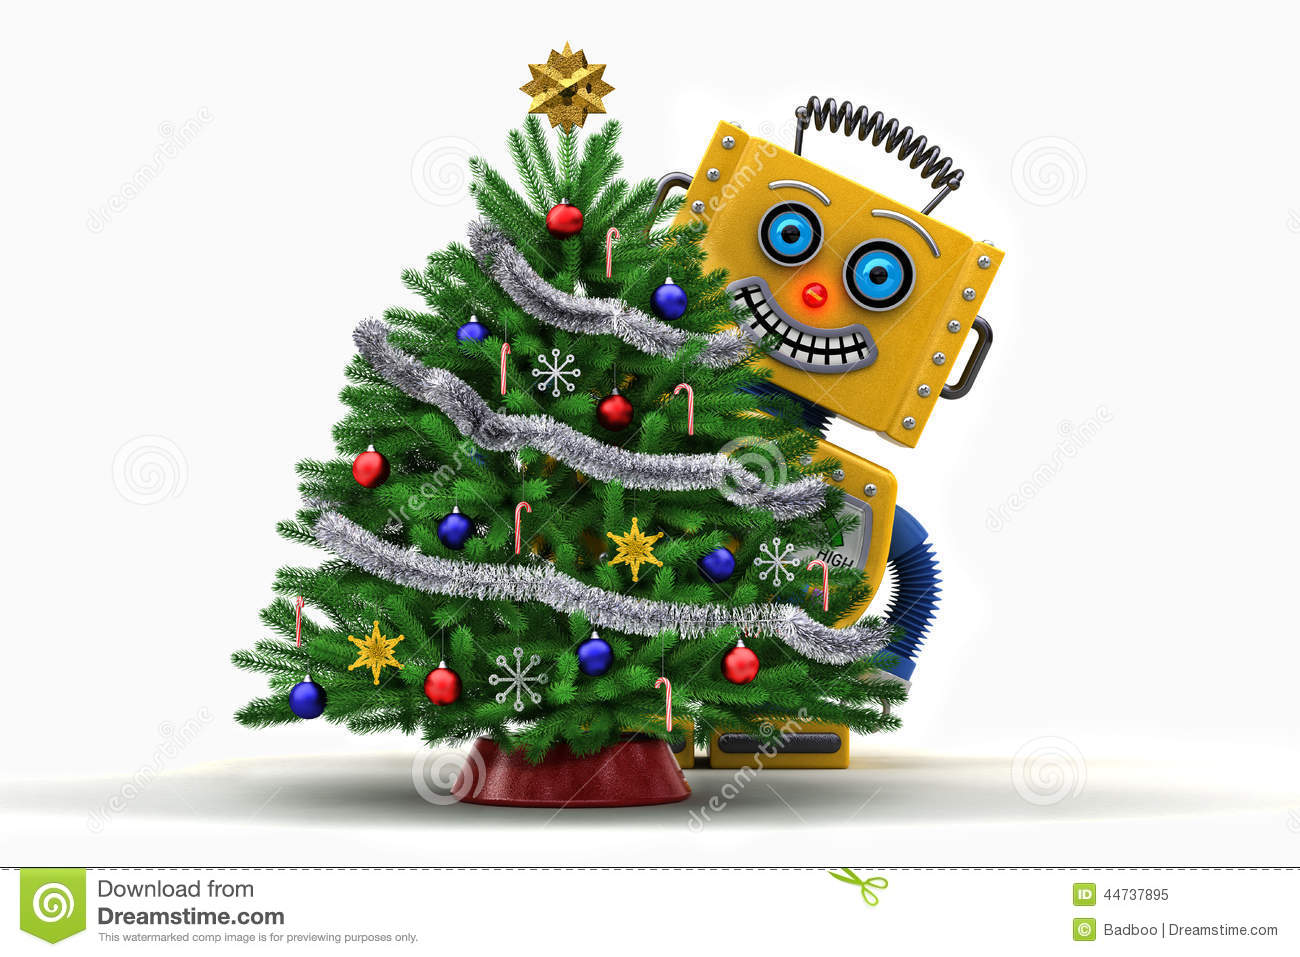 Christmas Robot Toys : Toy robot happy with christmas tree stock illustration